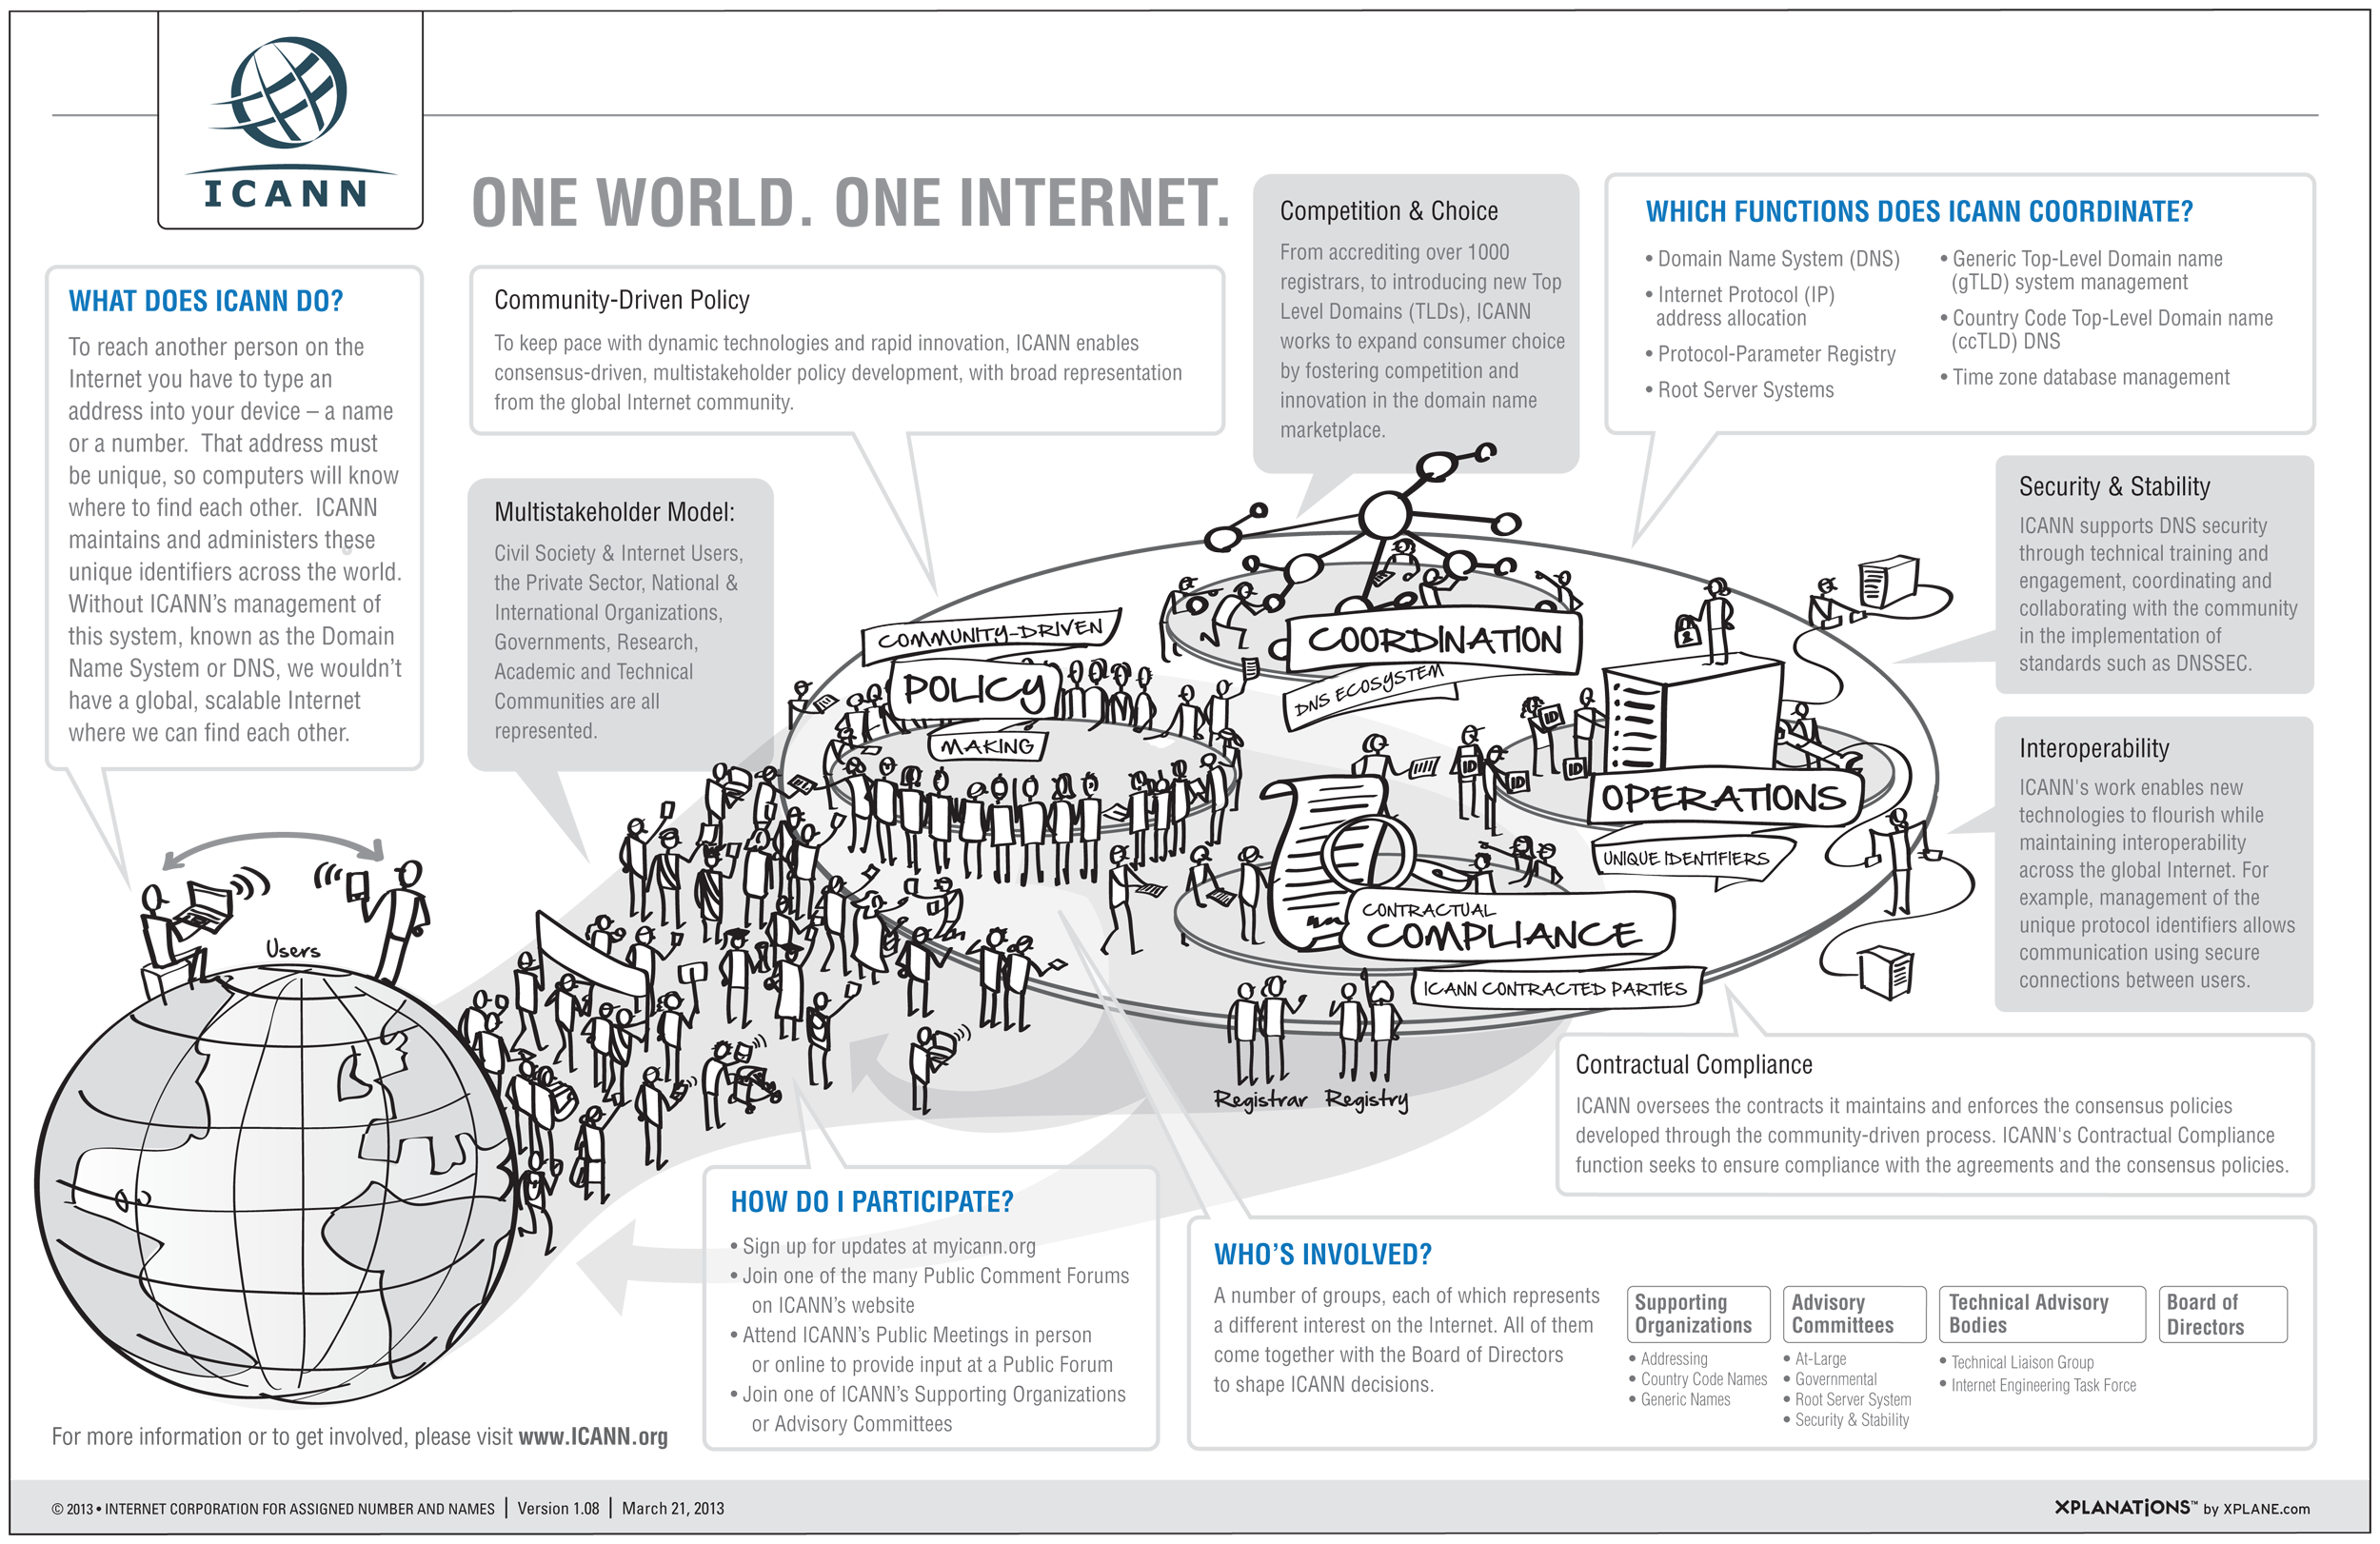 One World, One Internet